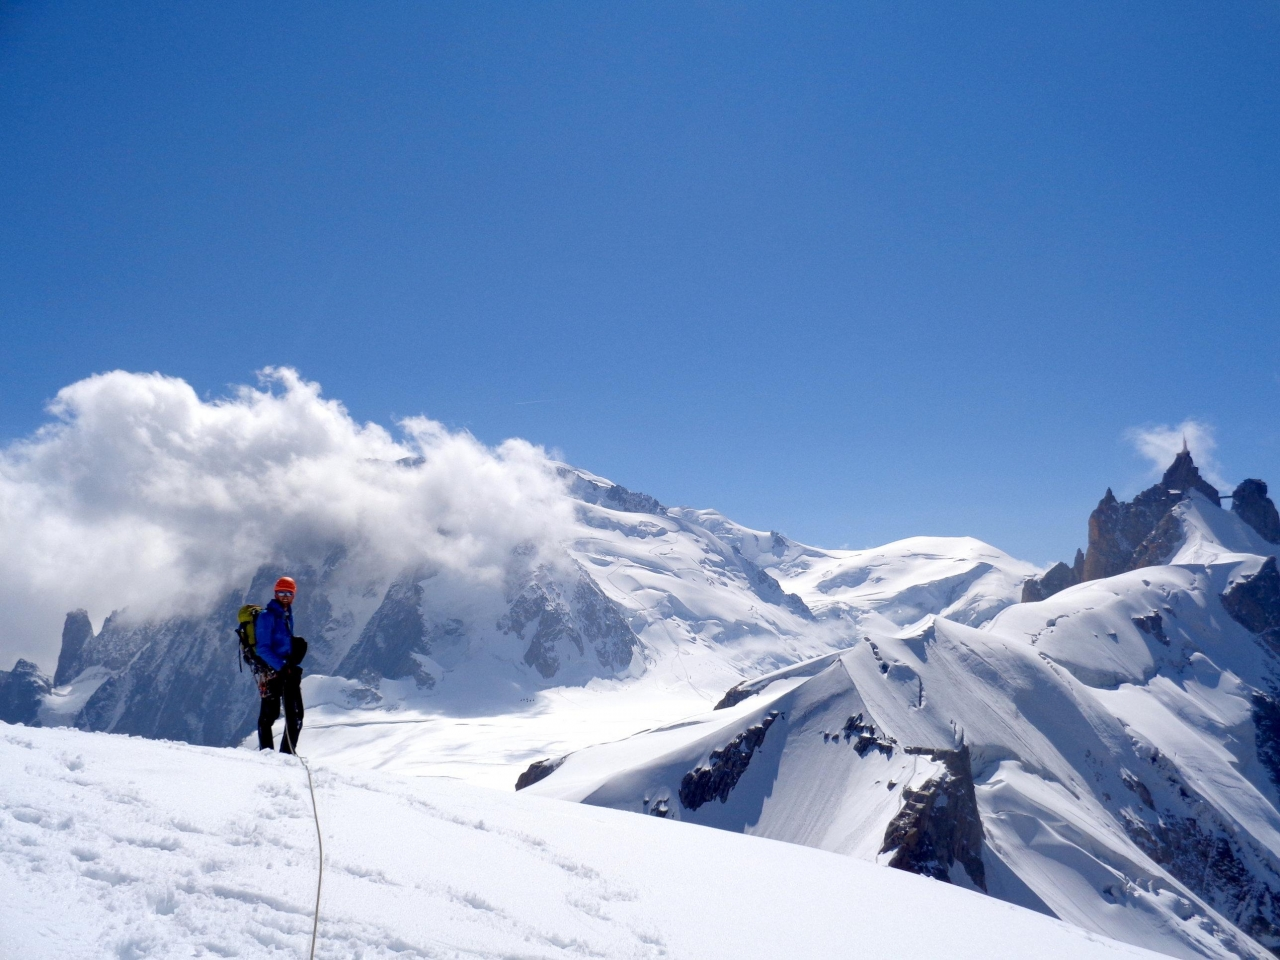 A picture from Aiguille du Midi by Explore-Share